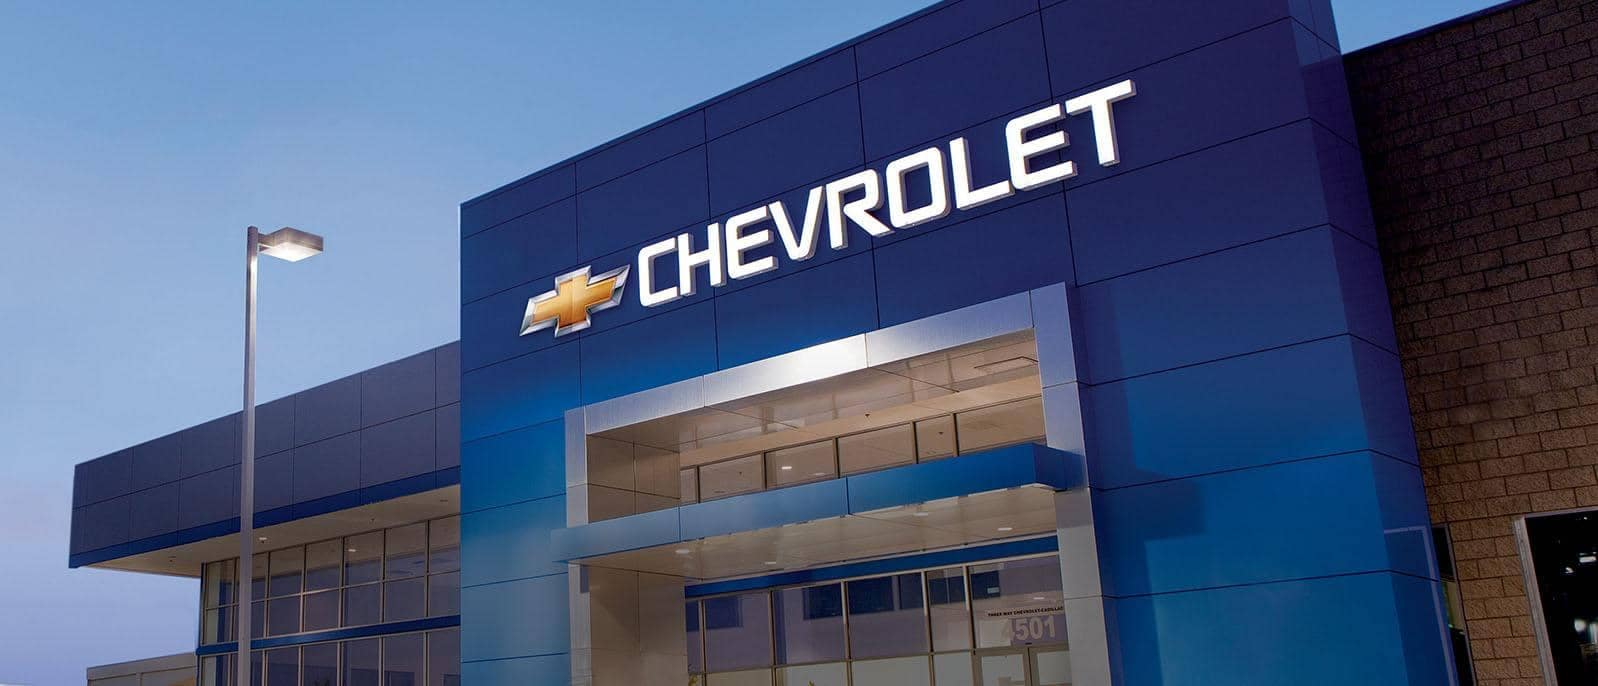 Chevrolet And Used Car Dealer In Dallas